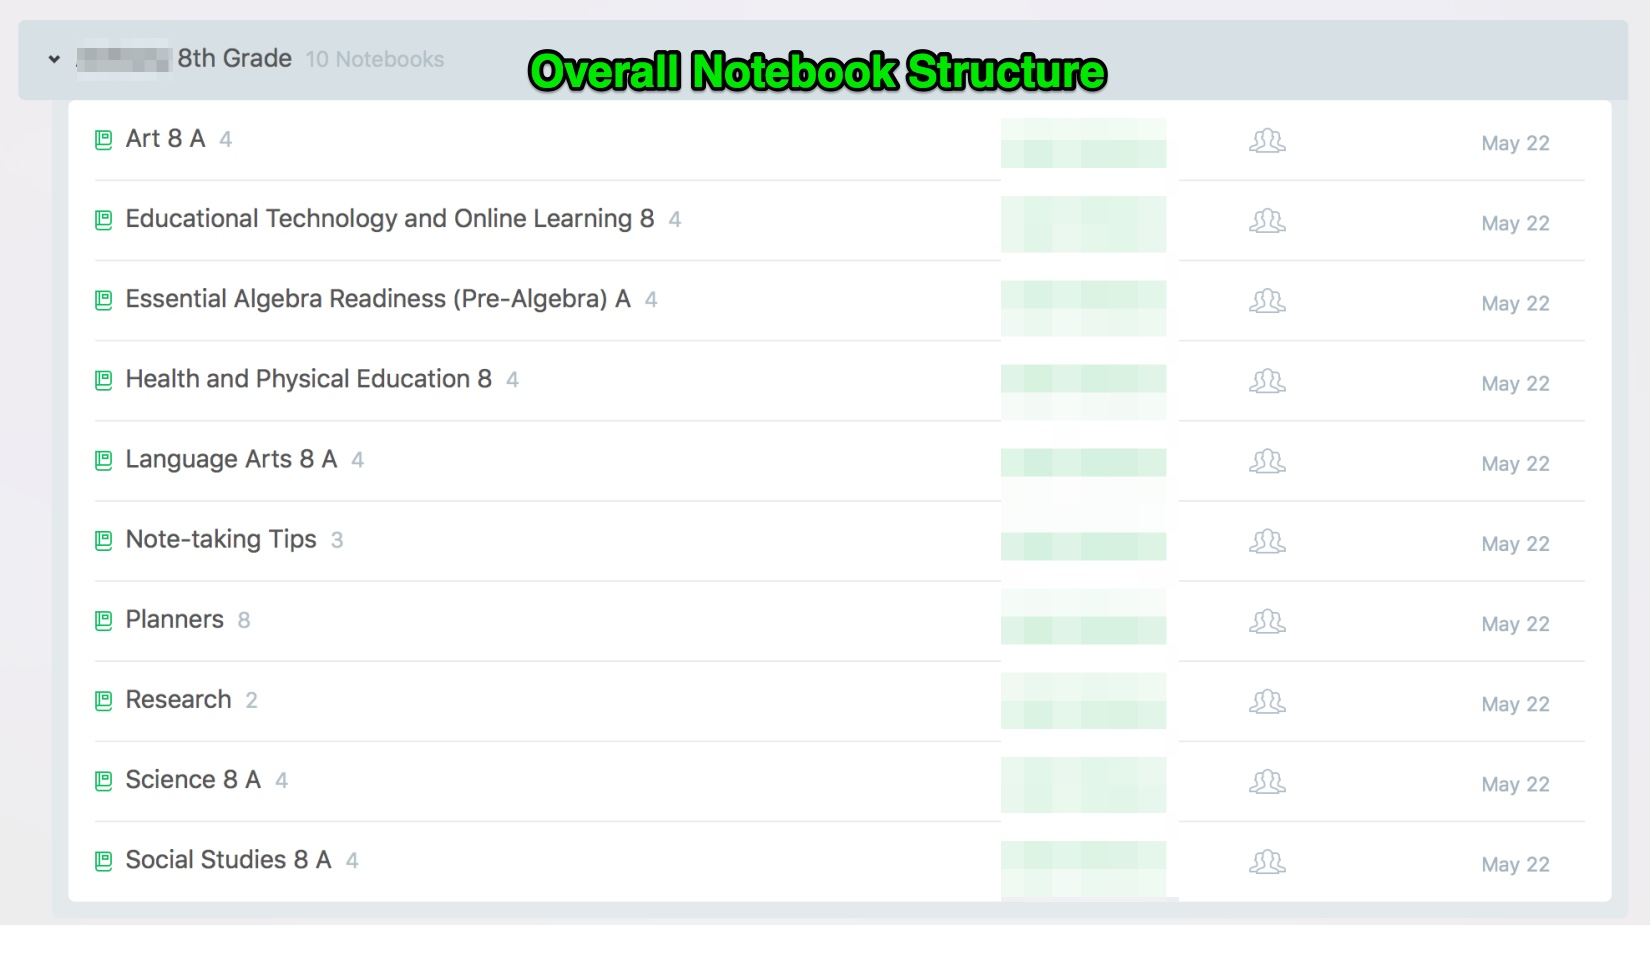 Overview of Evernote notebook structure.